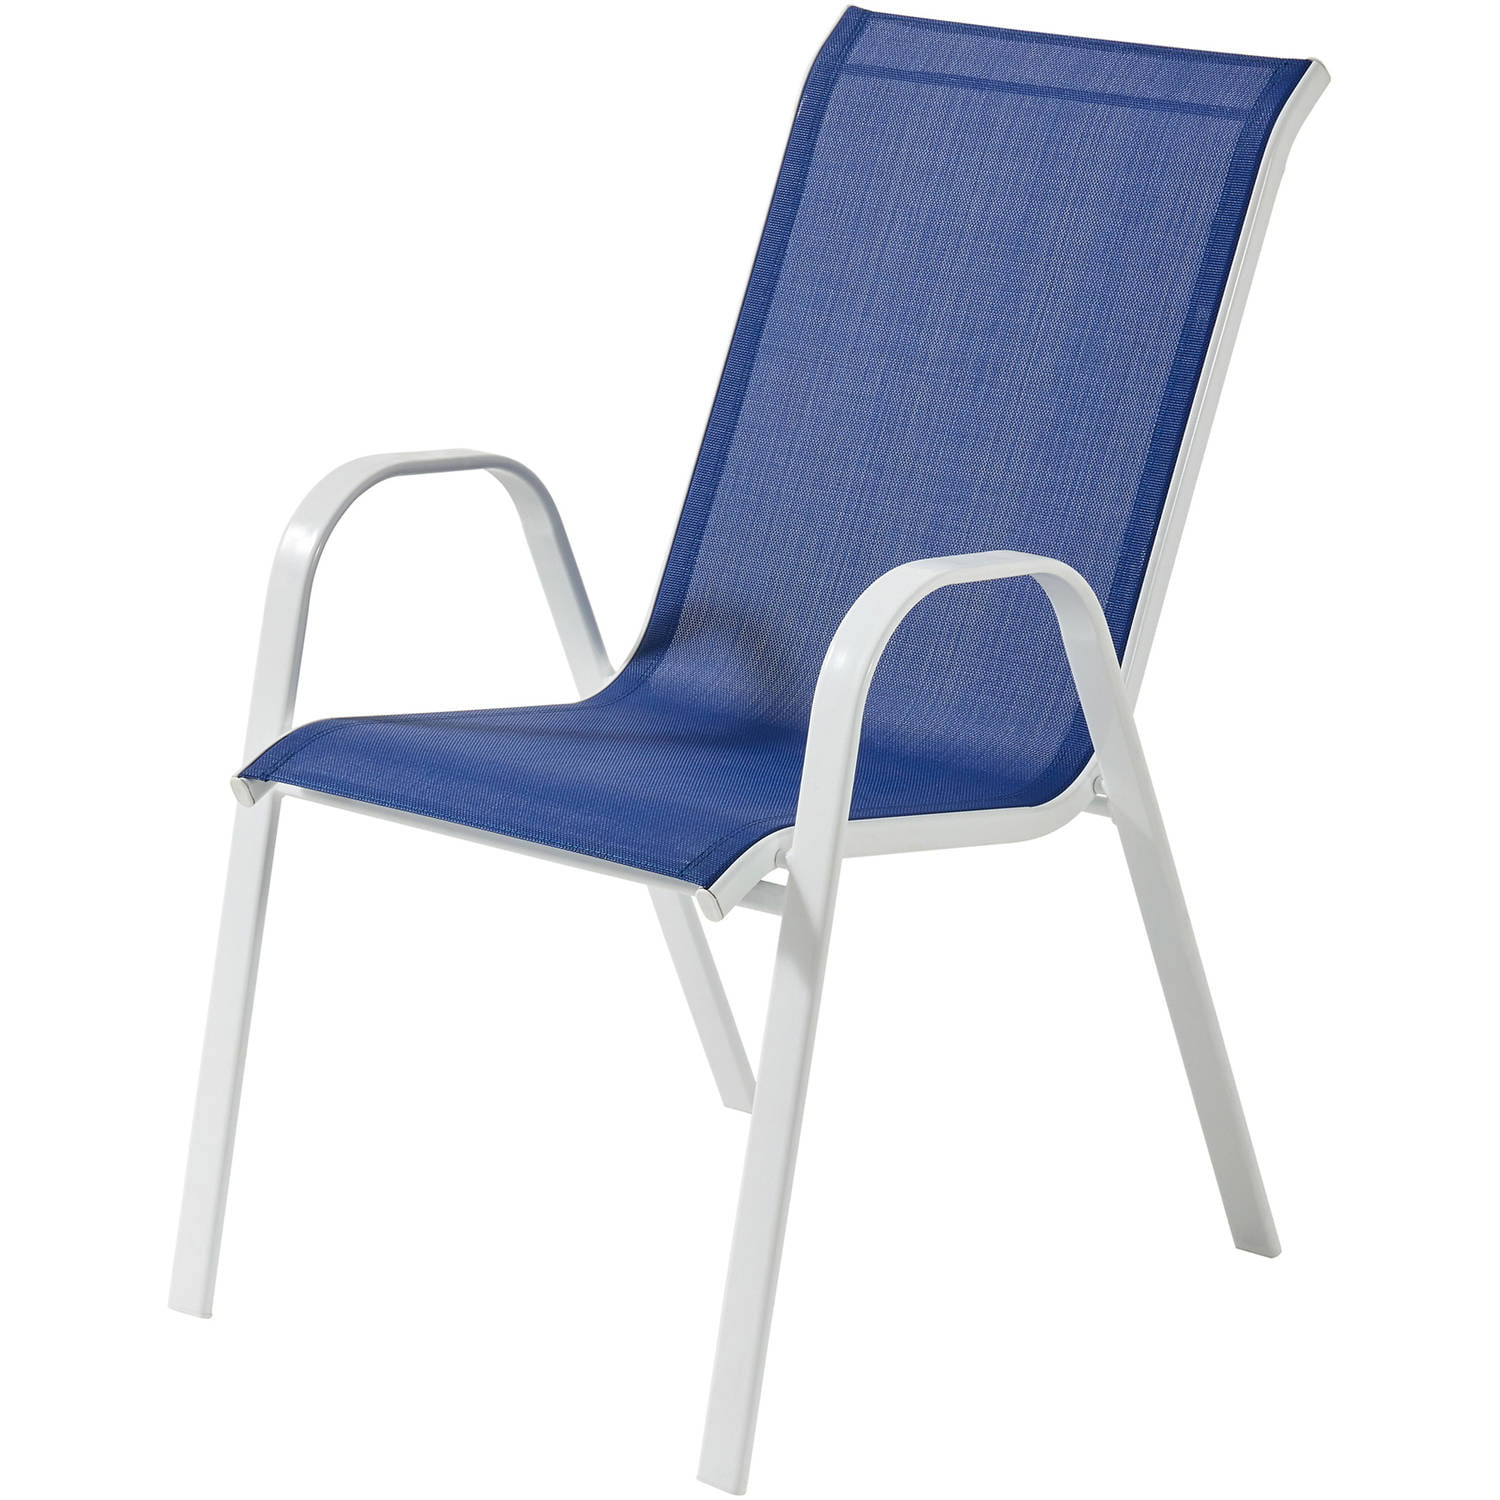 Sling Stacking Chair Mainstays Heritage Park Stacking Sling Chair Royal Blue